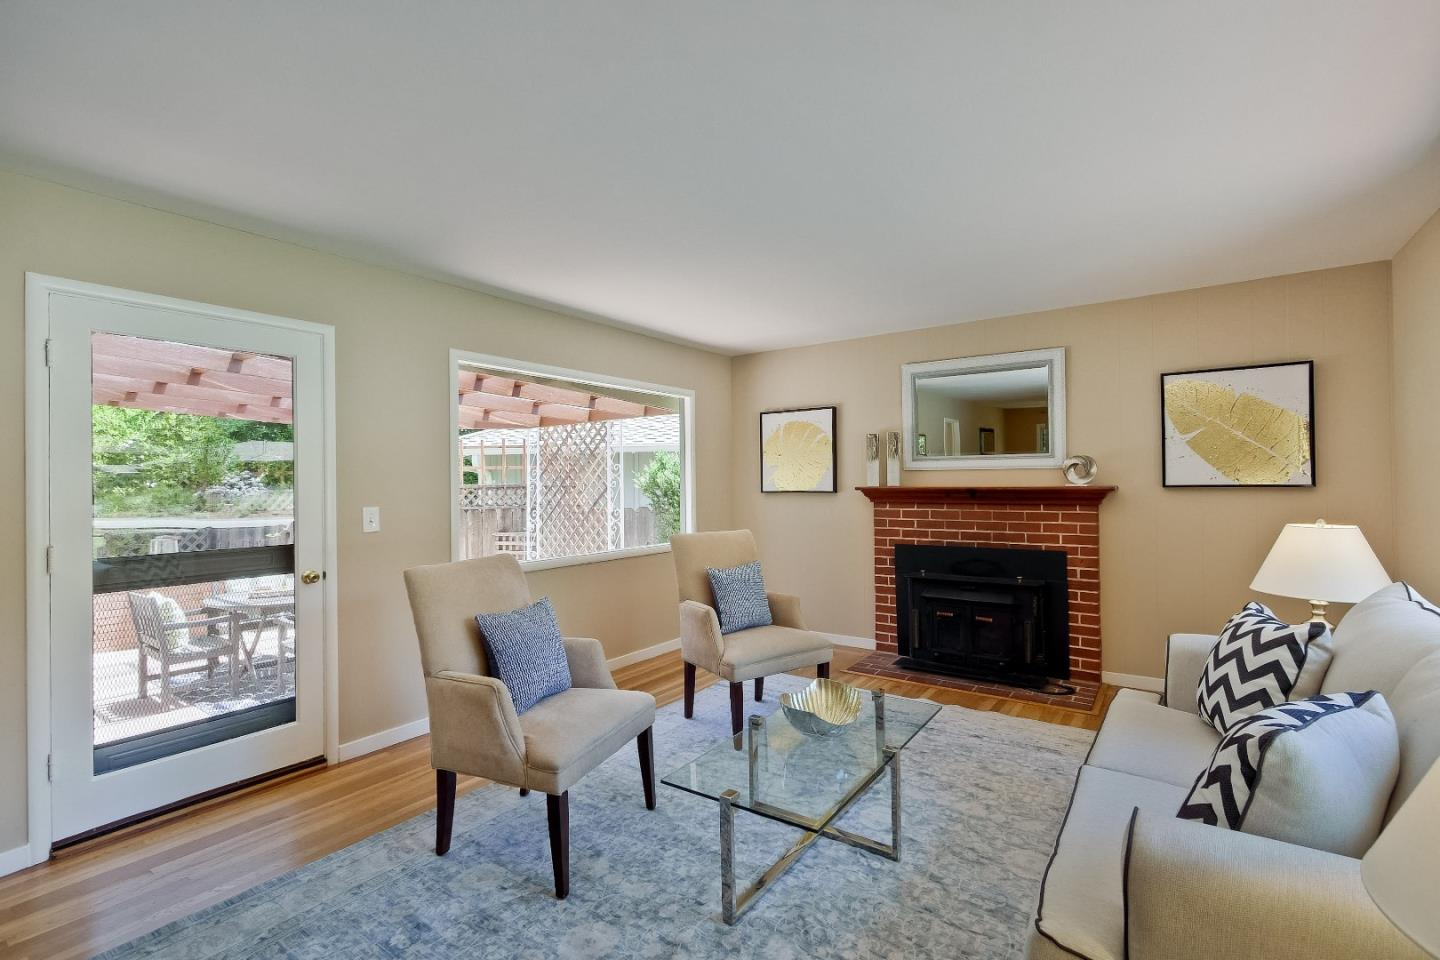 Additional photo for property listing at 322 Wyndham Drive  Portola Valley, カリフォルニア 94028 アメリカ合衆国